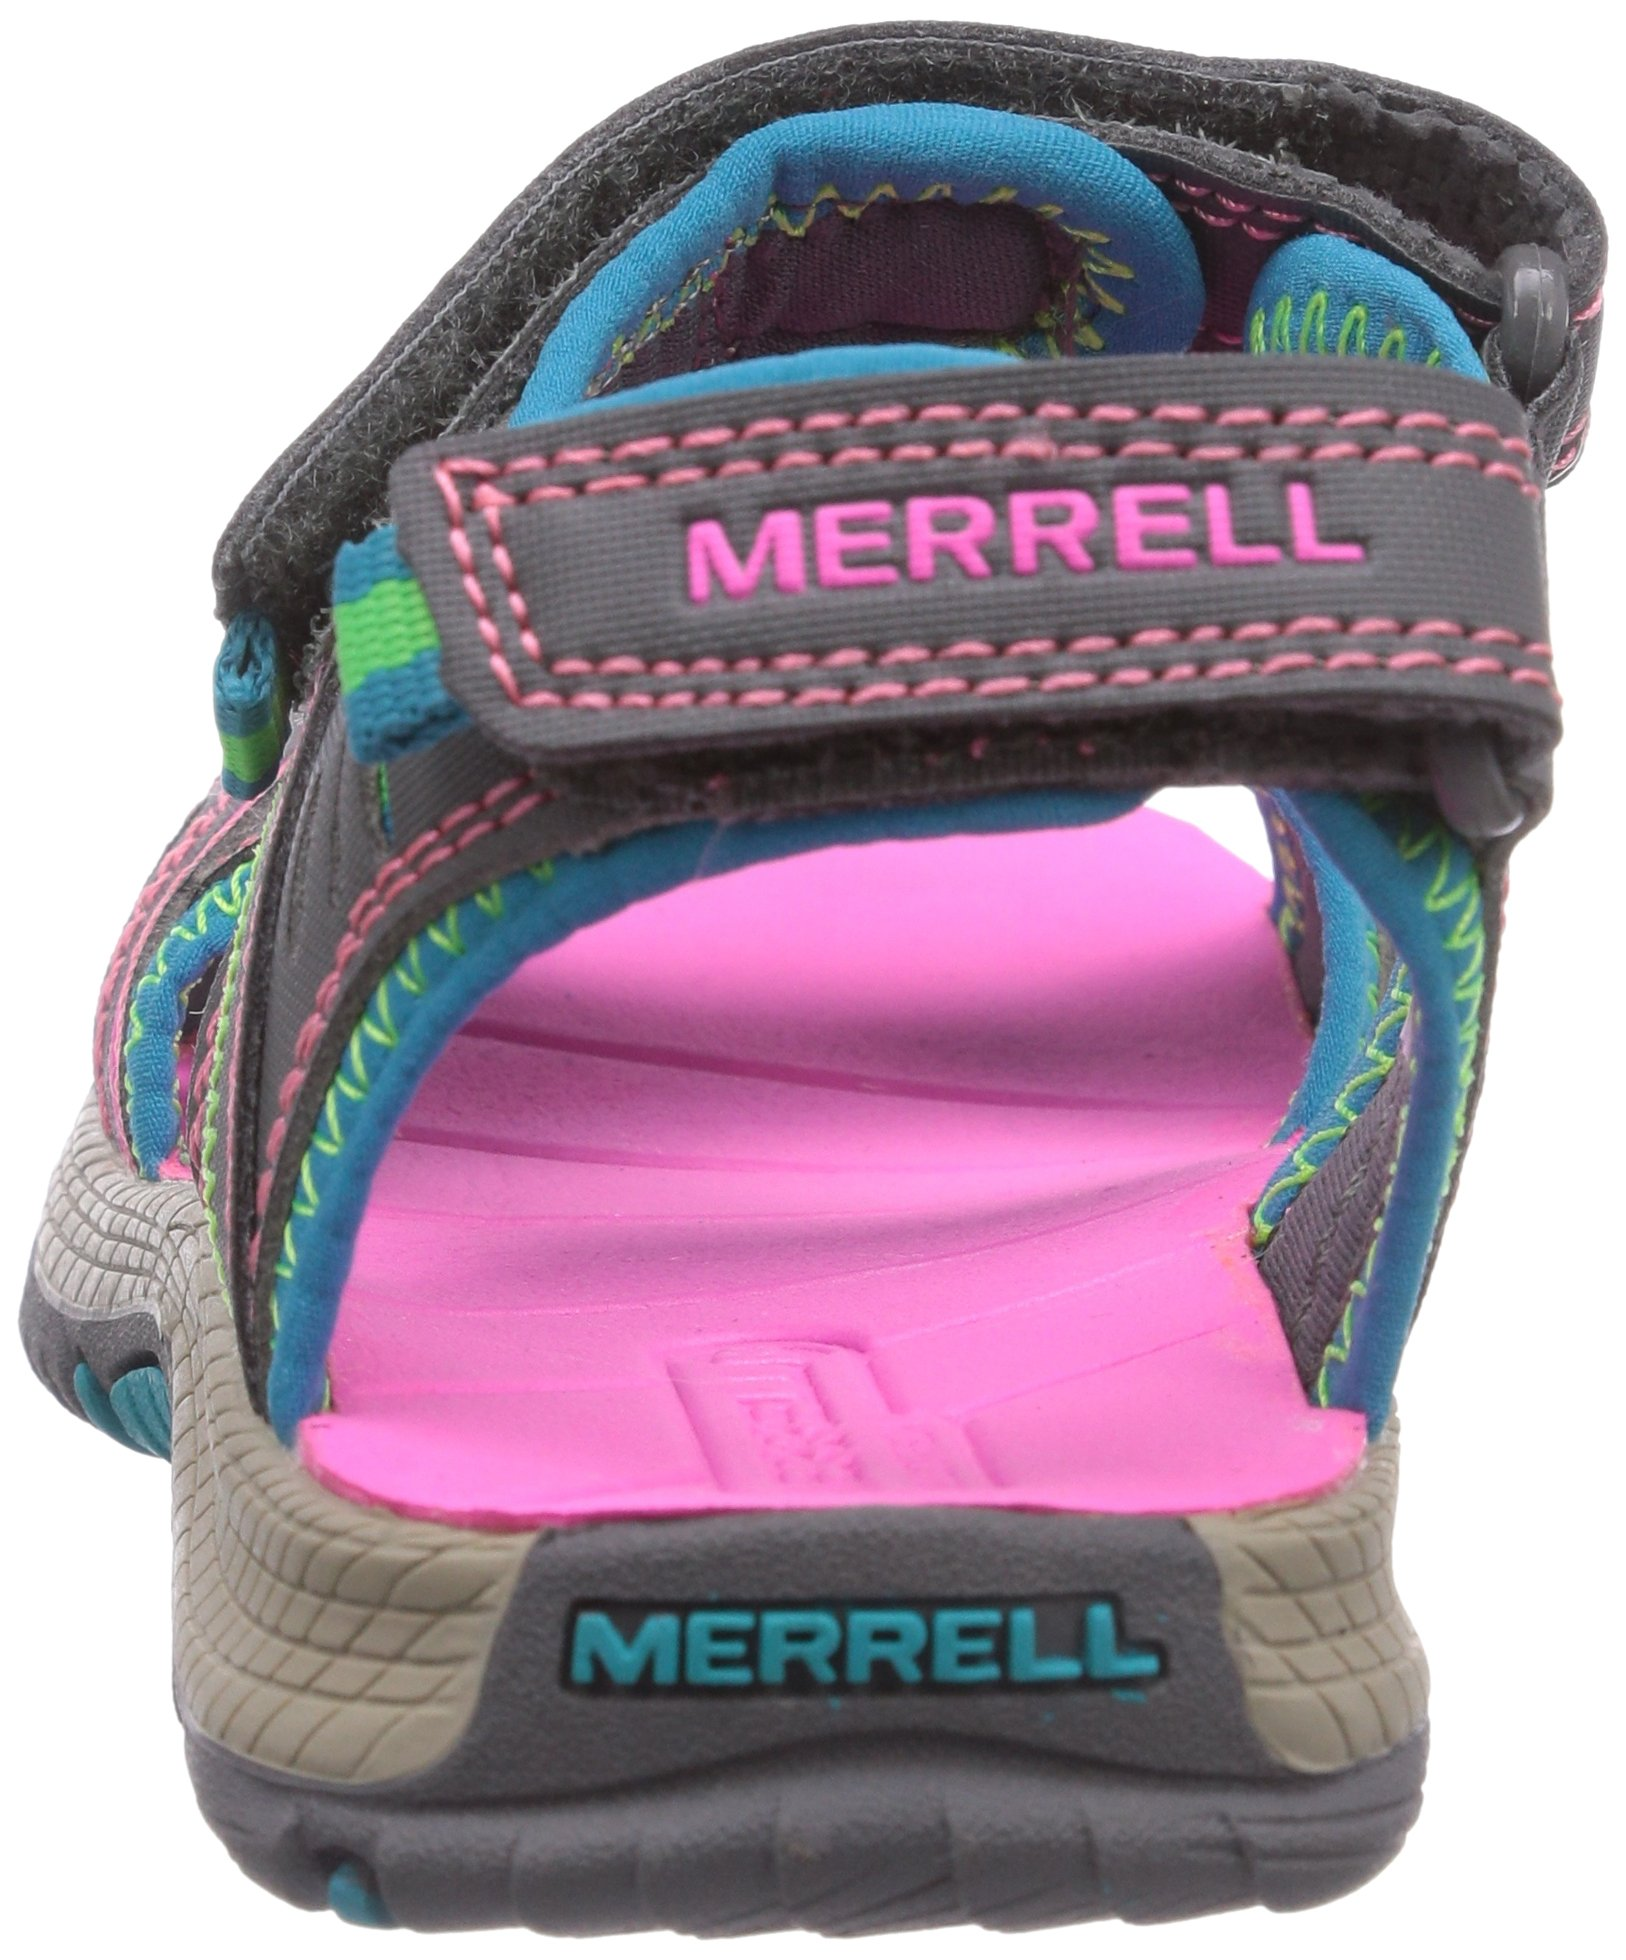 Merrell Panther Athletic Water Sandal , Blue/Pink/Green, 11 M US Little Kid by Merrell (Image #2)